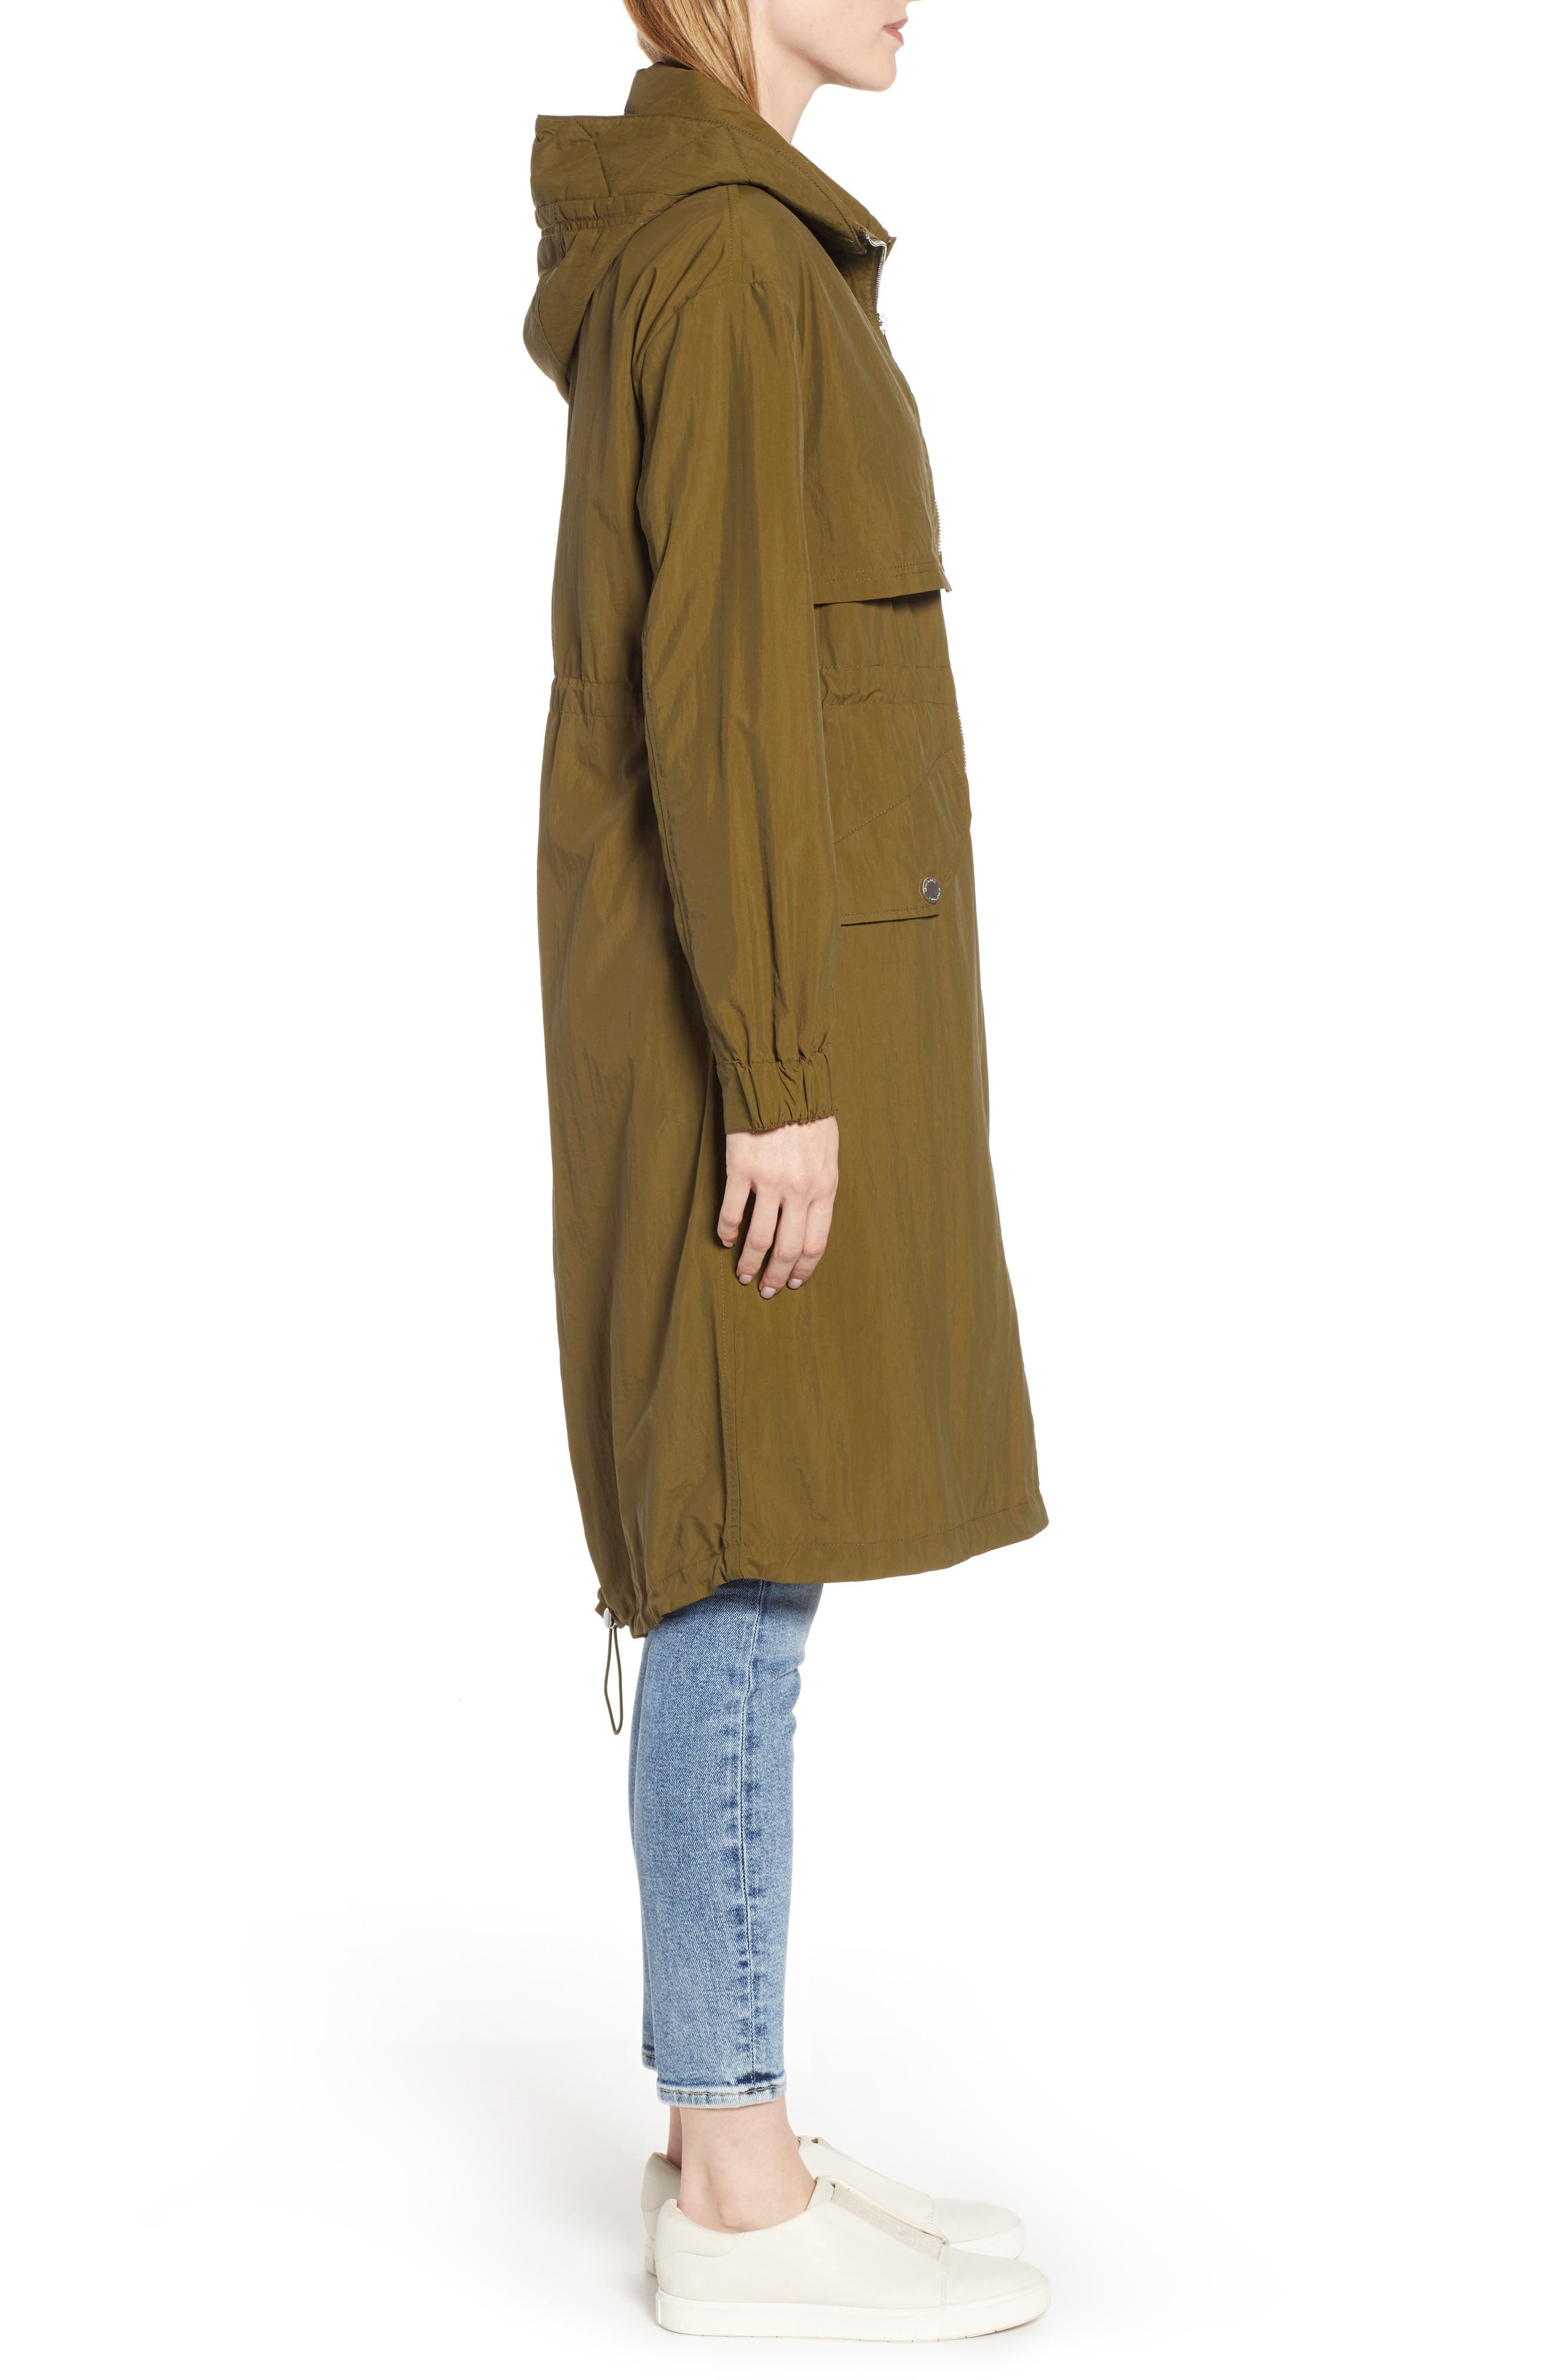 KENNETH COLE NEW YORK, Hooded Parka, Alternate thumbnail 4, color, OLIVE